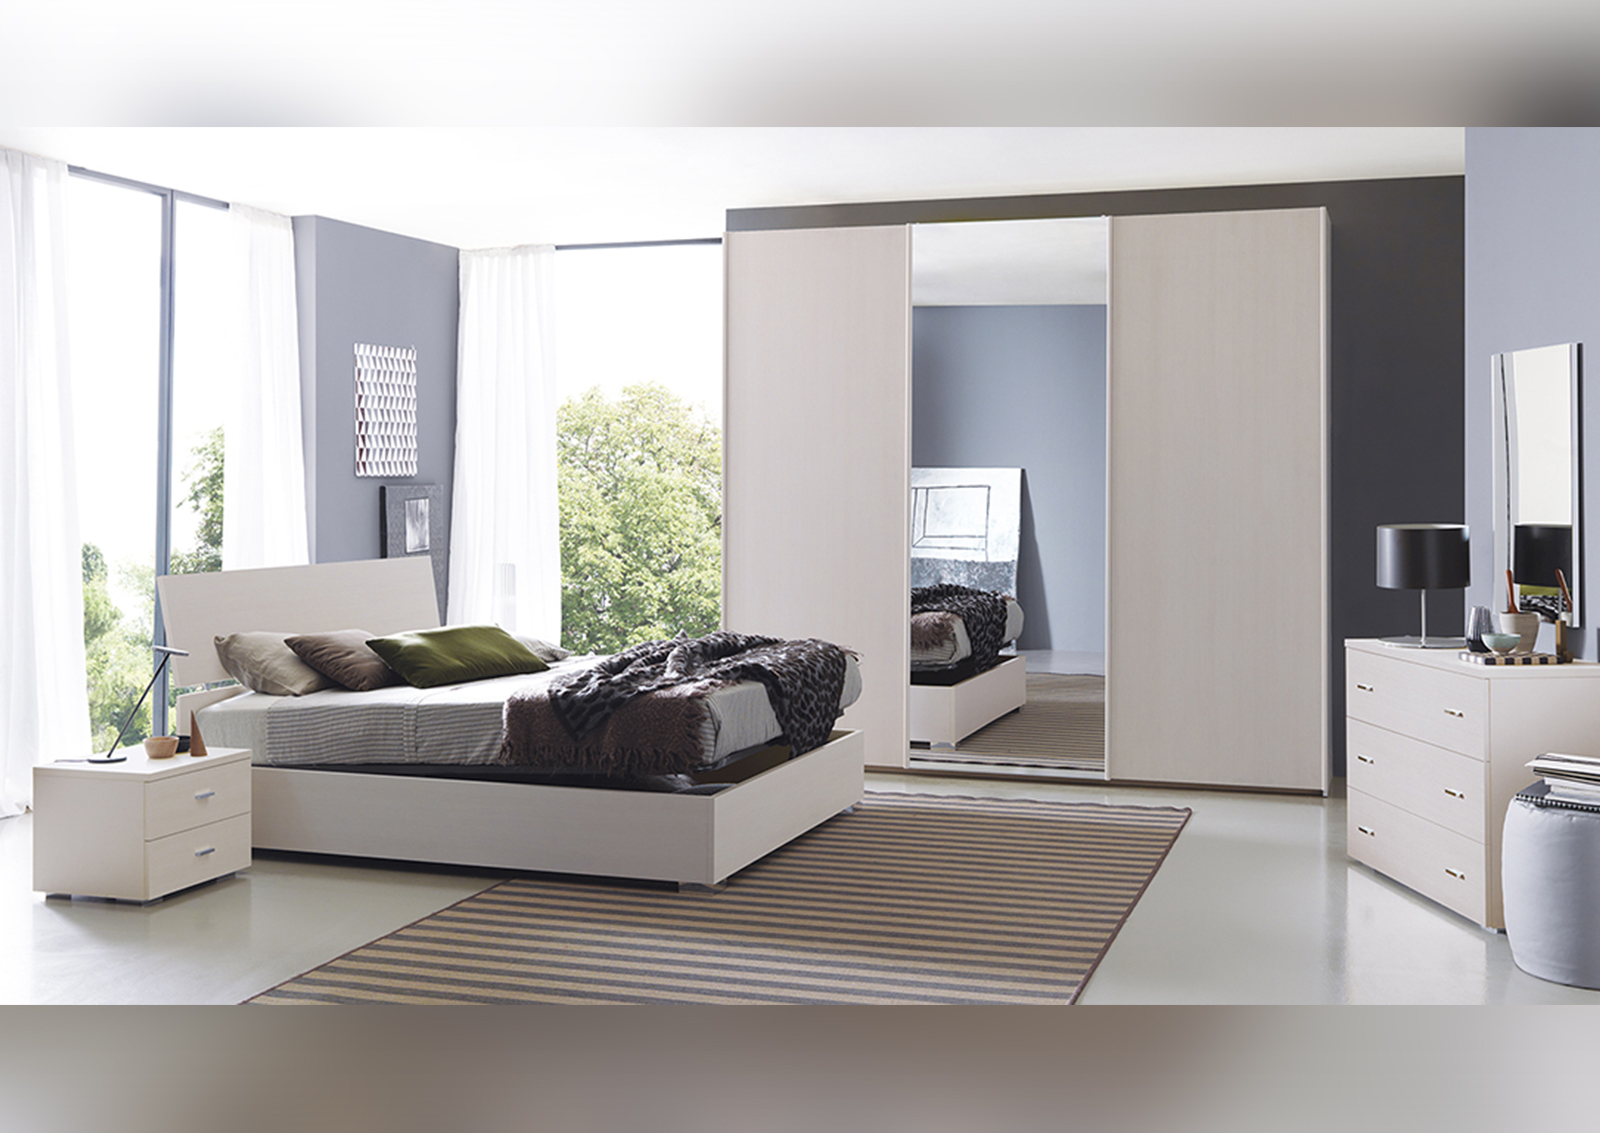 Come arredare la camera da letto matrimoniale design italia for Camera da letto arredamento